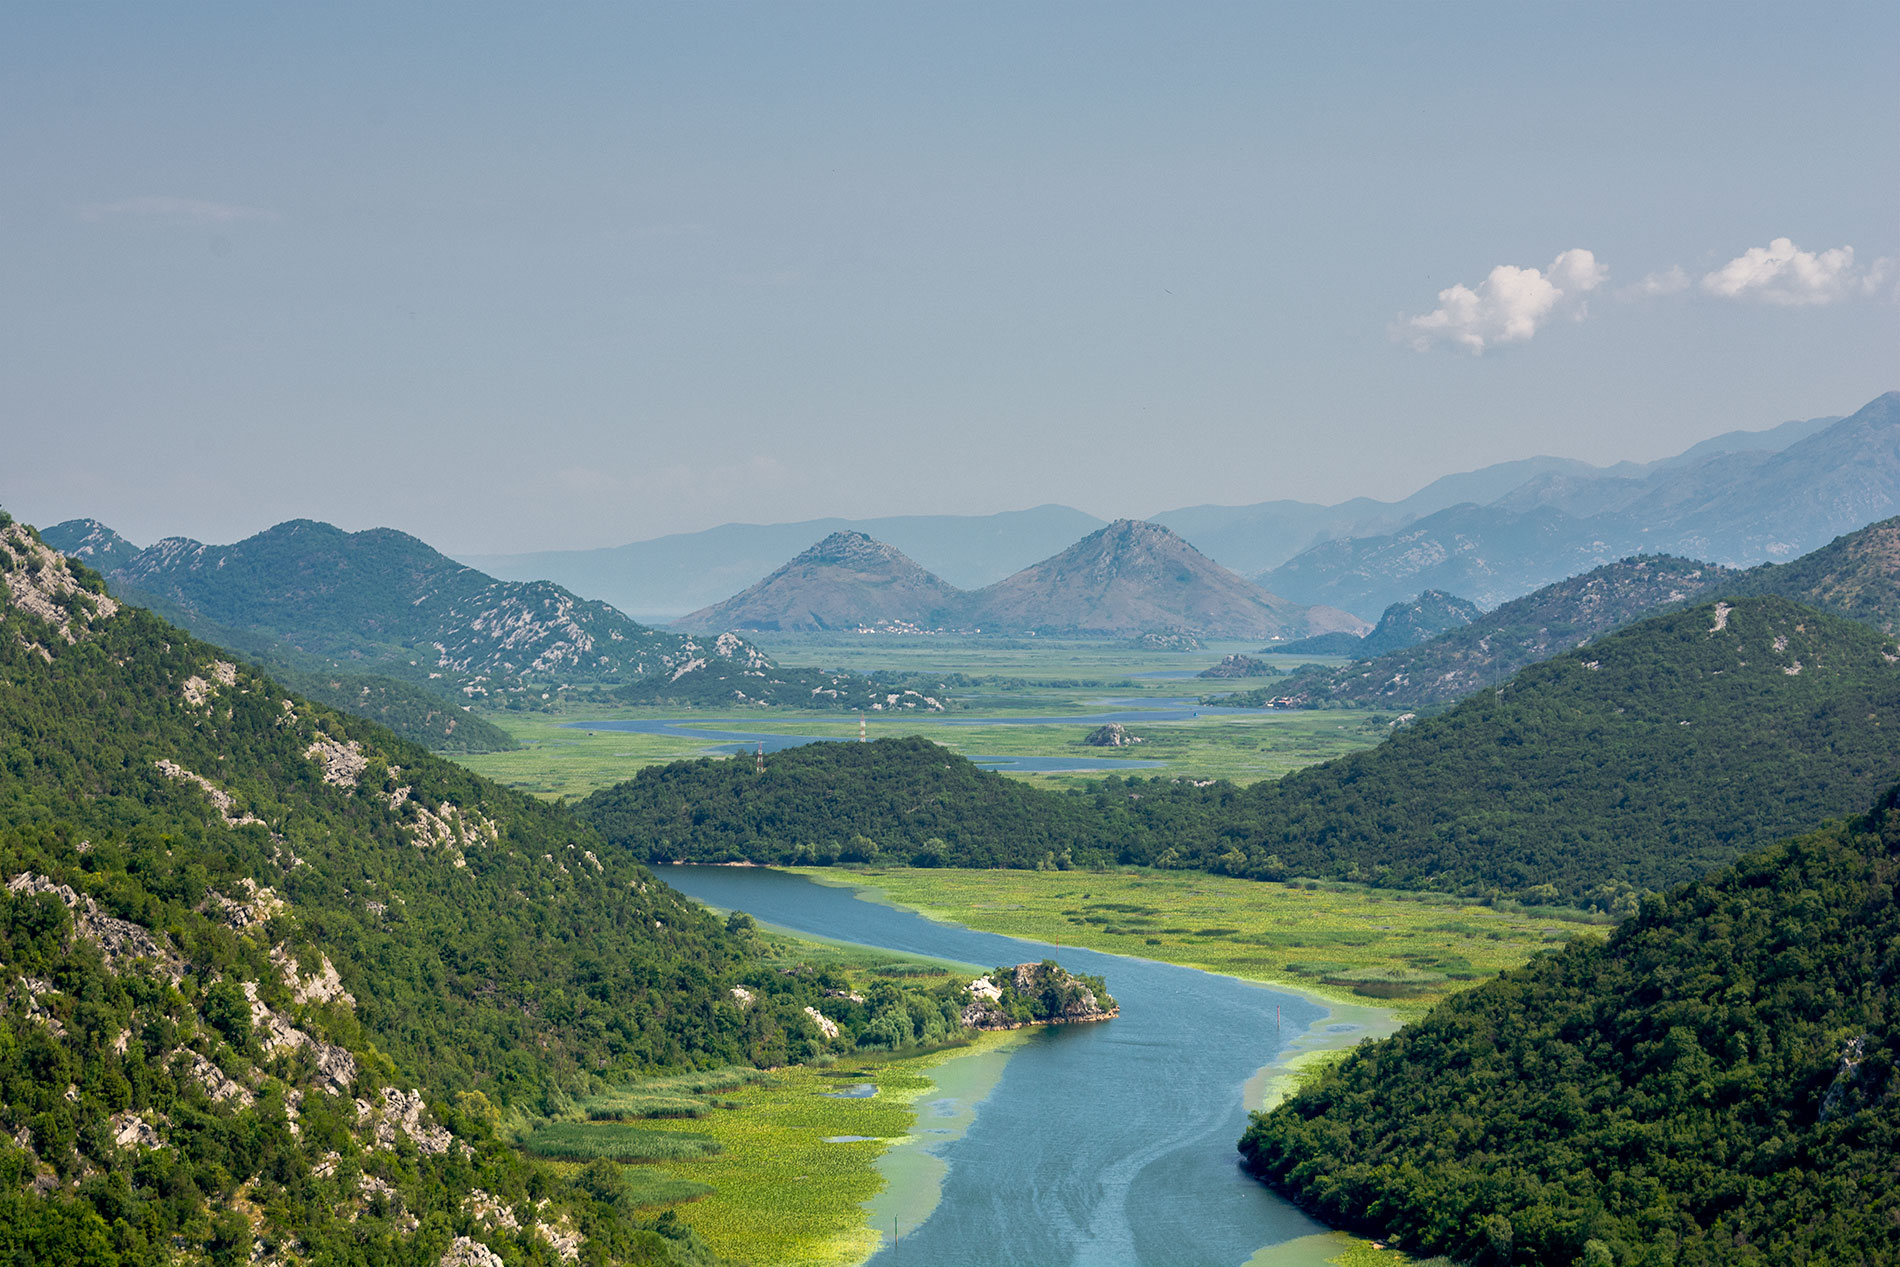 The Skadar Lake is one of the most beautiful attractions of Montenegro